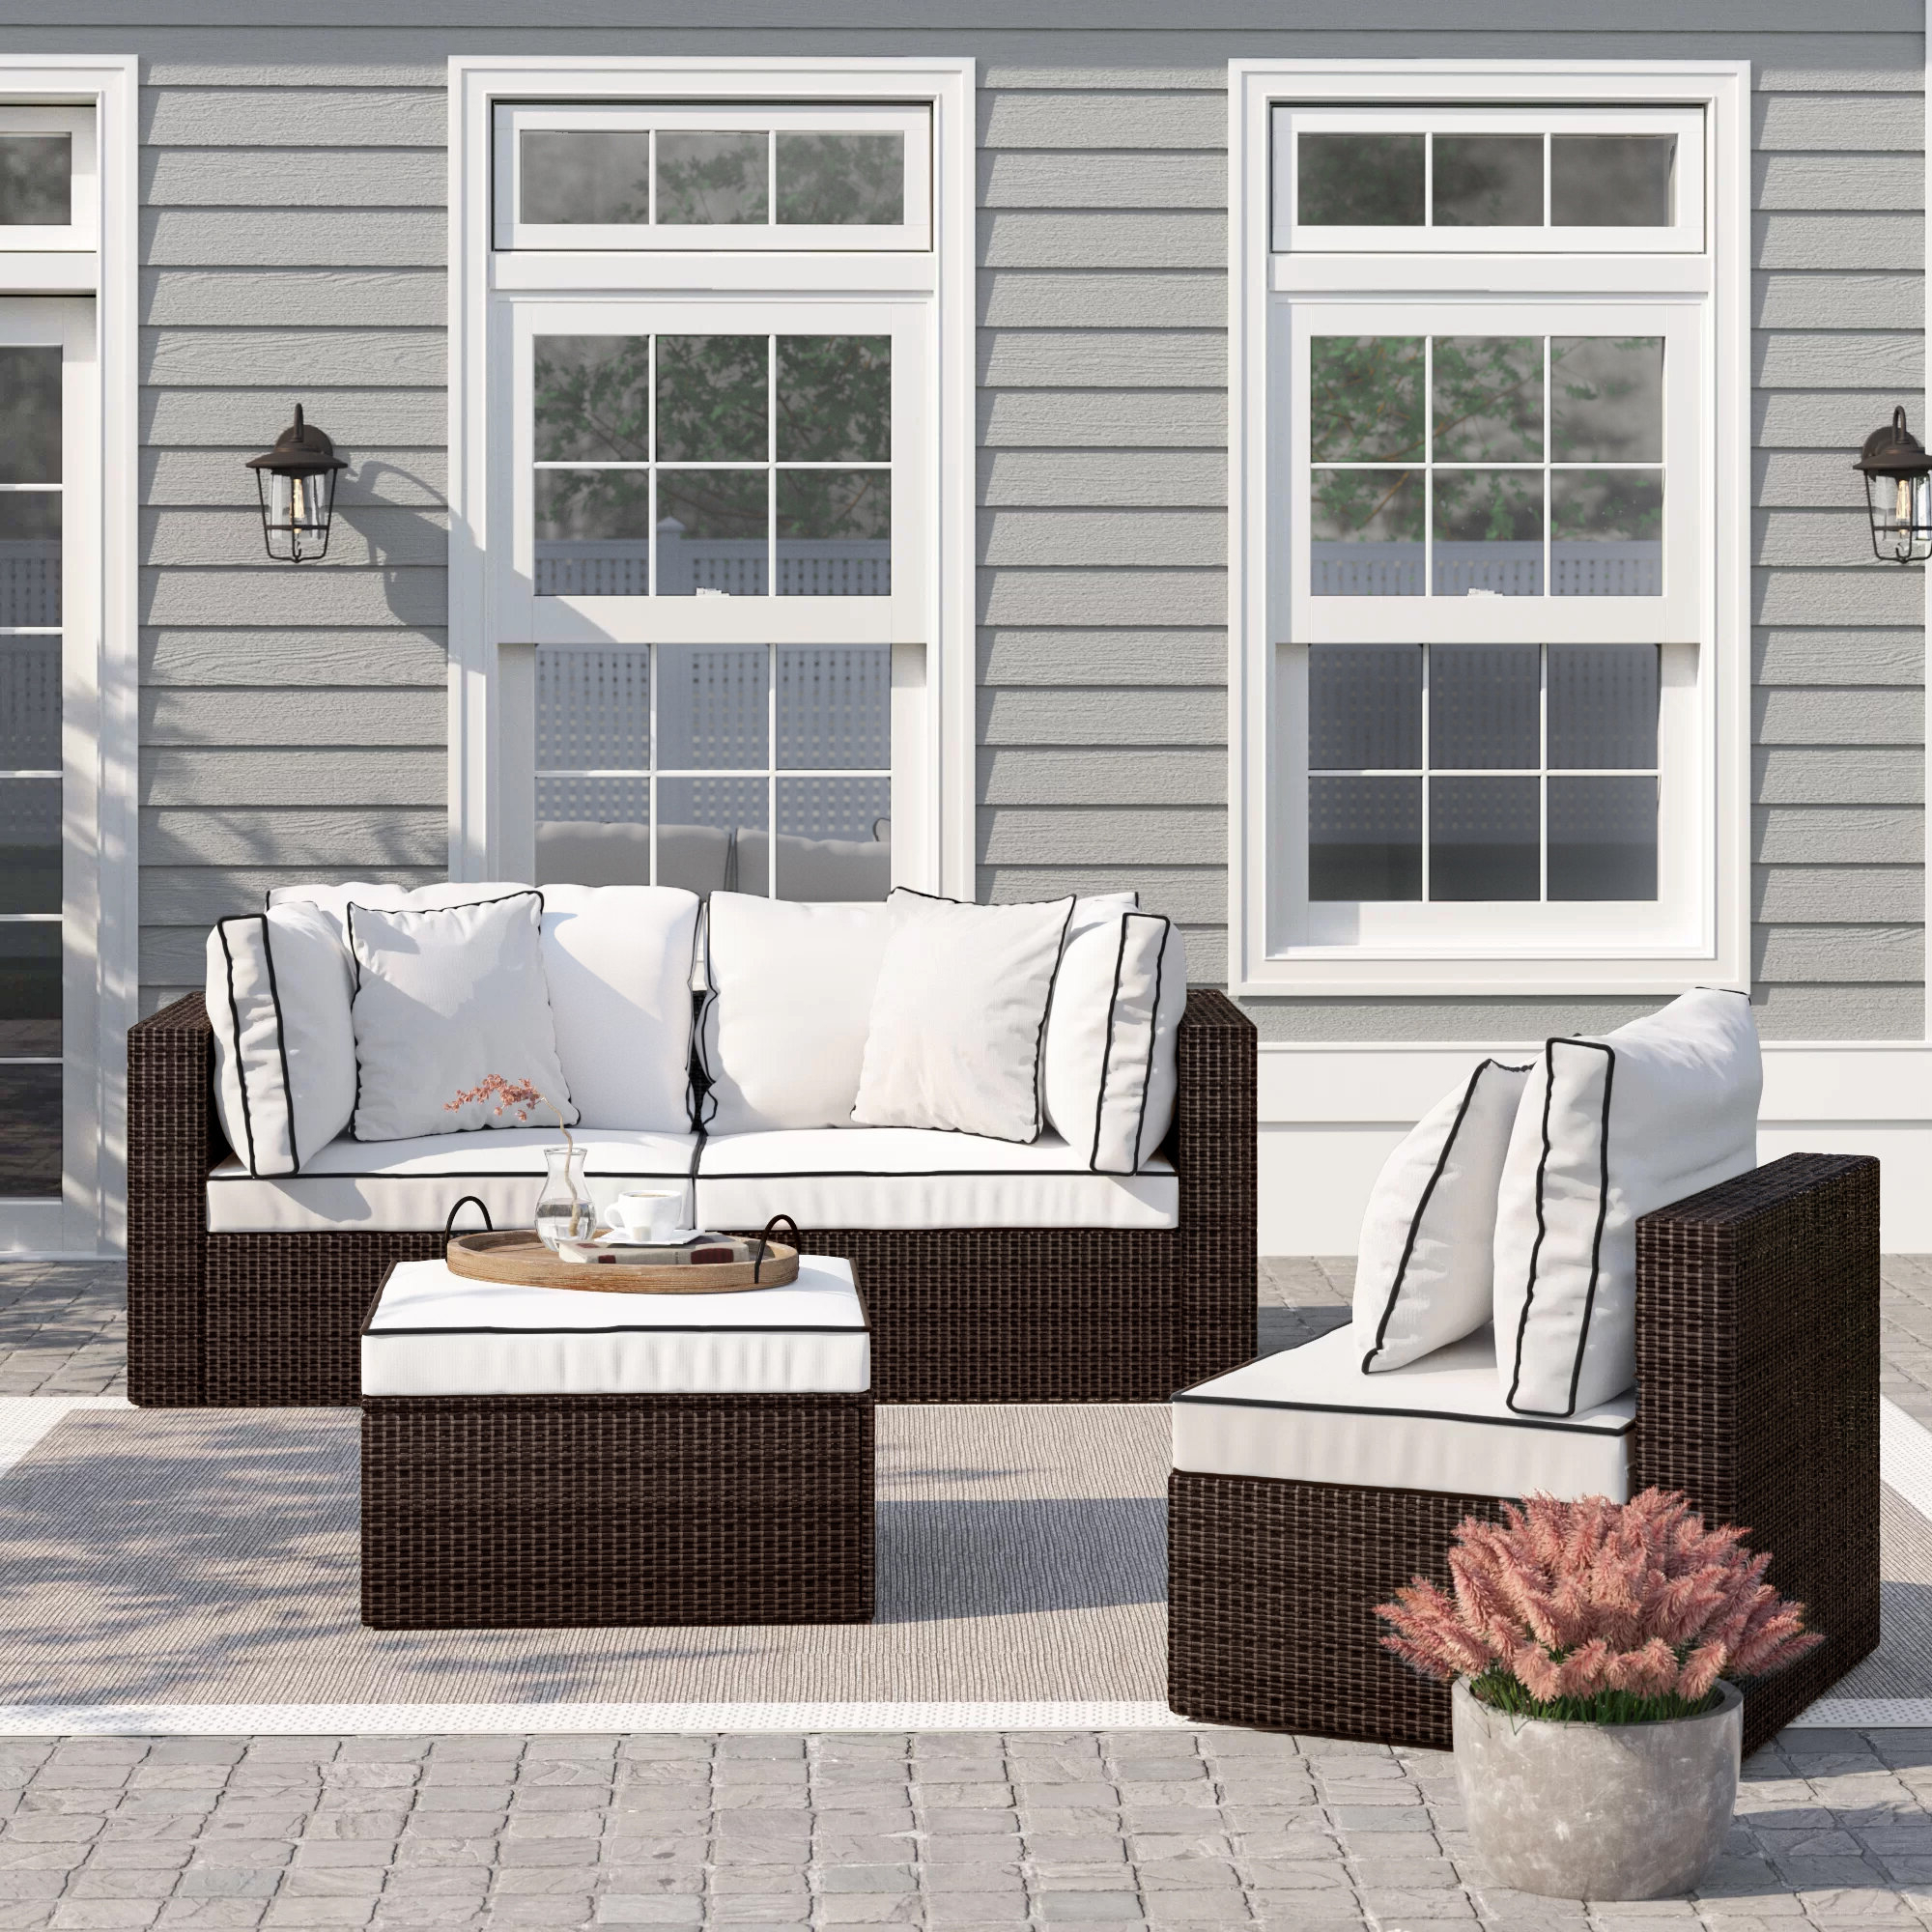 Burruss Patio Sectional With Cushions Within 2020 Lawson Patio Sofas With Cushions (View 25 of 25)